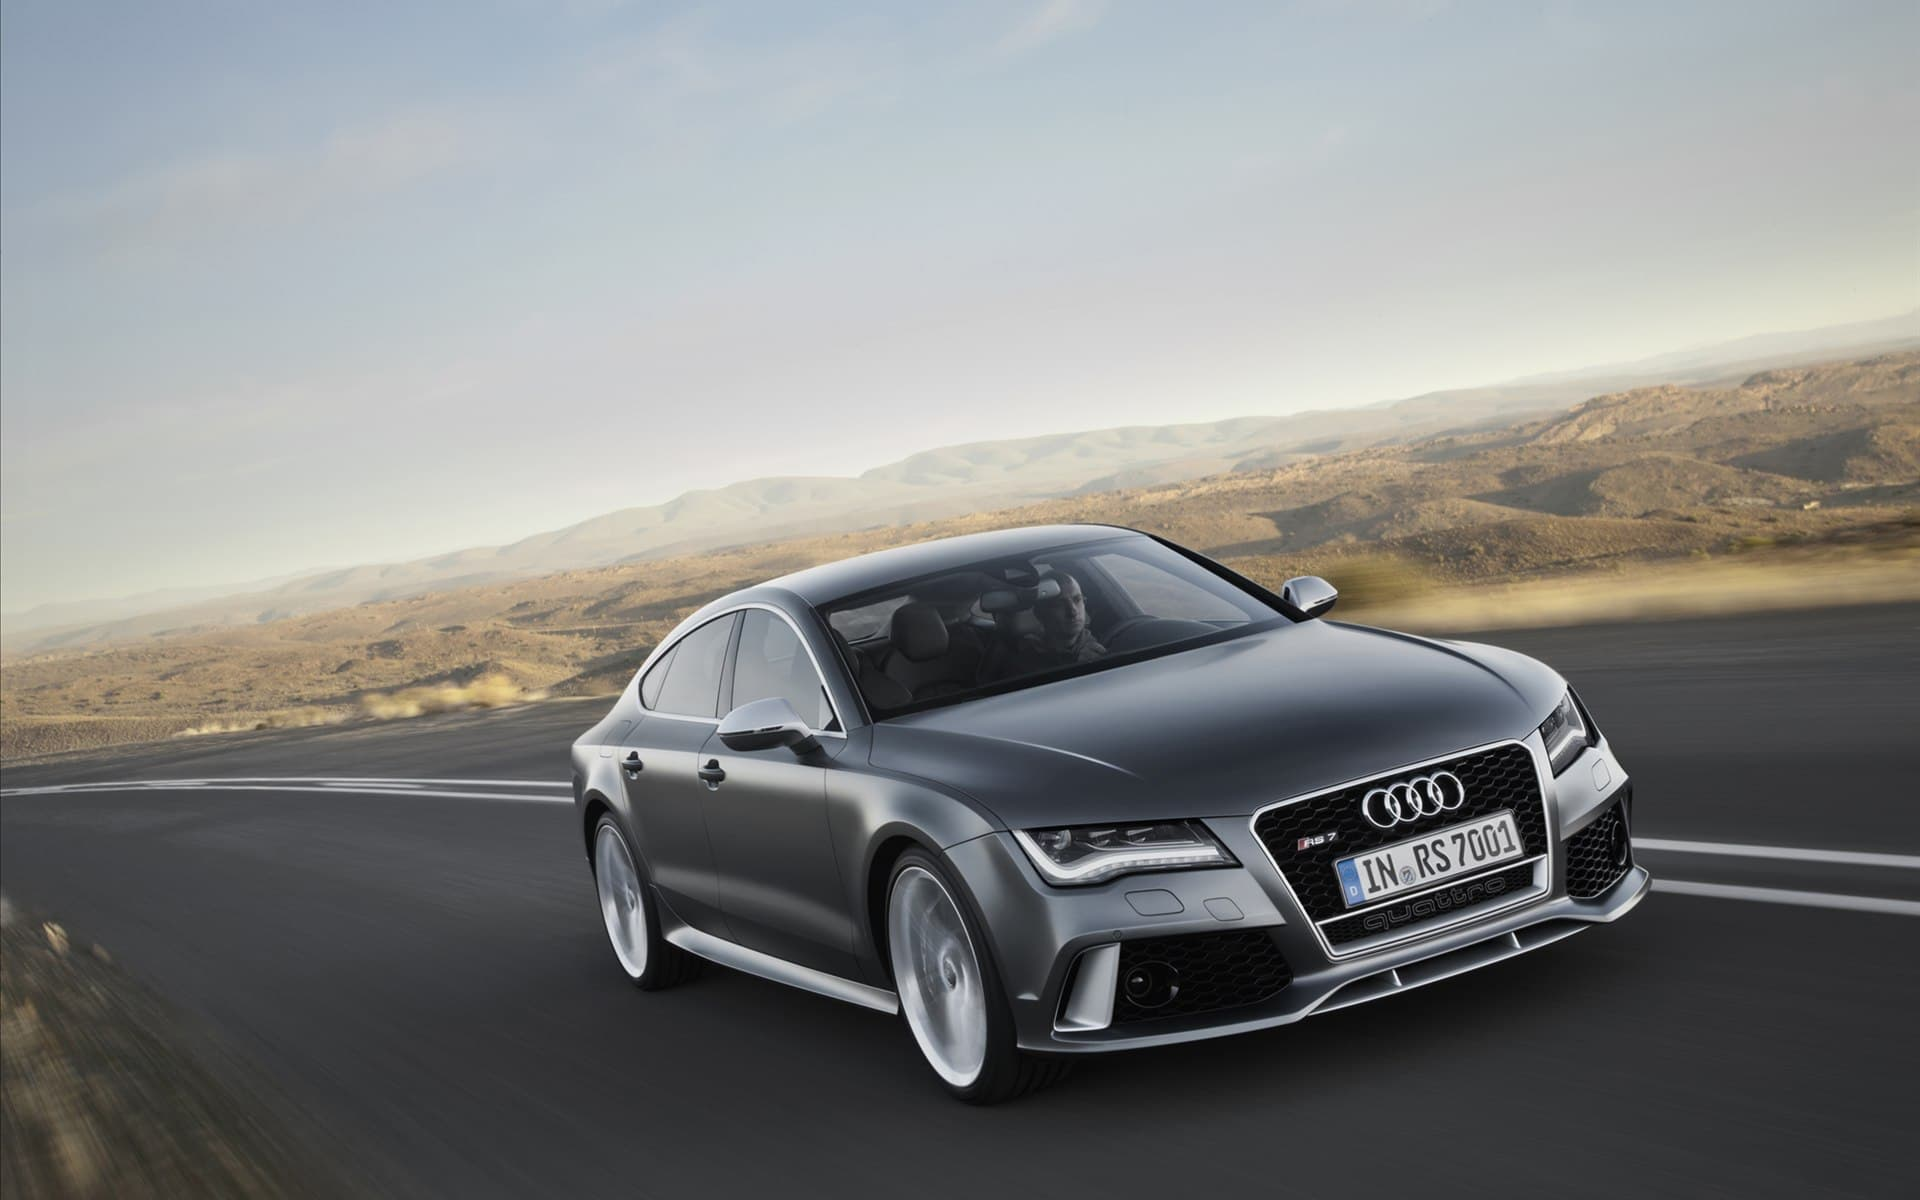 HD wallpapers audi rs7 ipad wallpaper